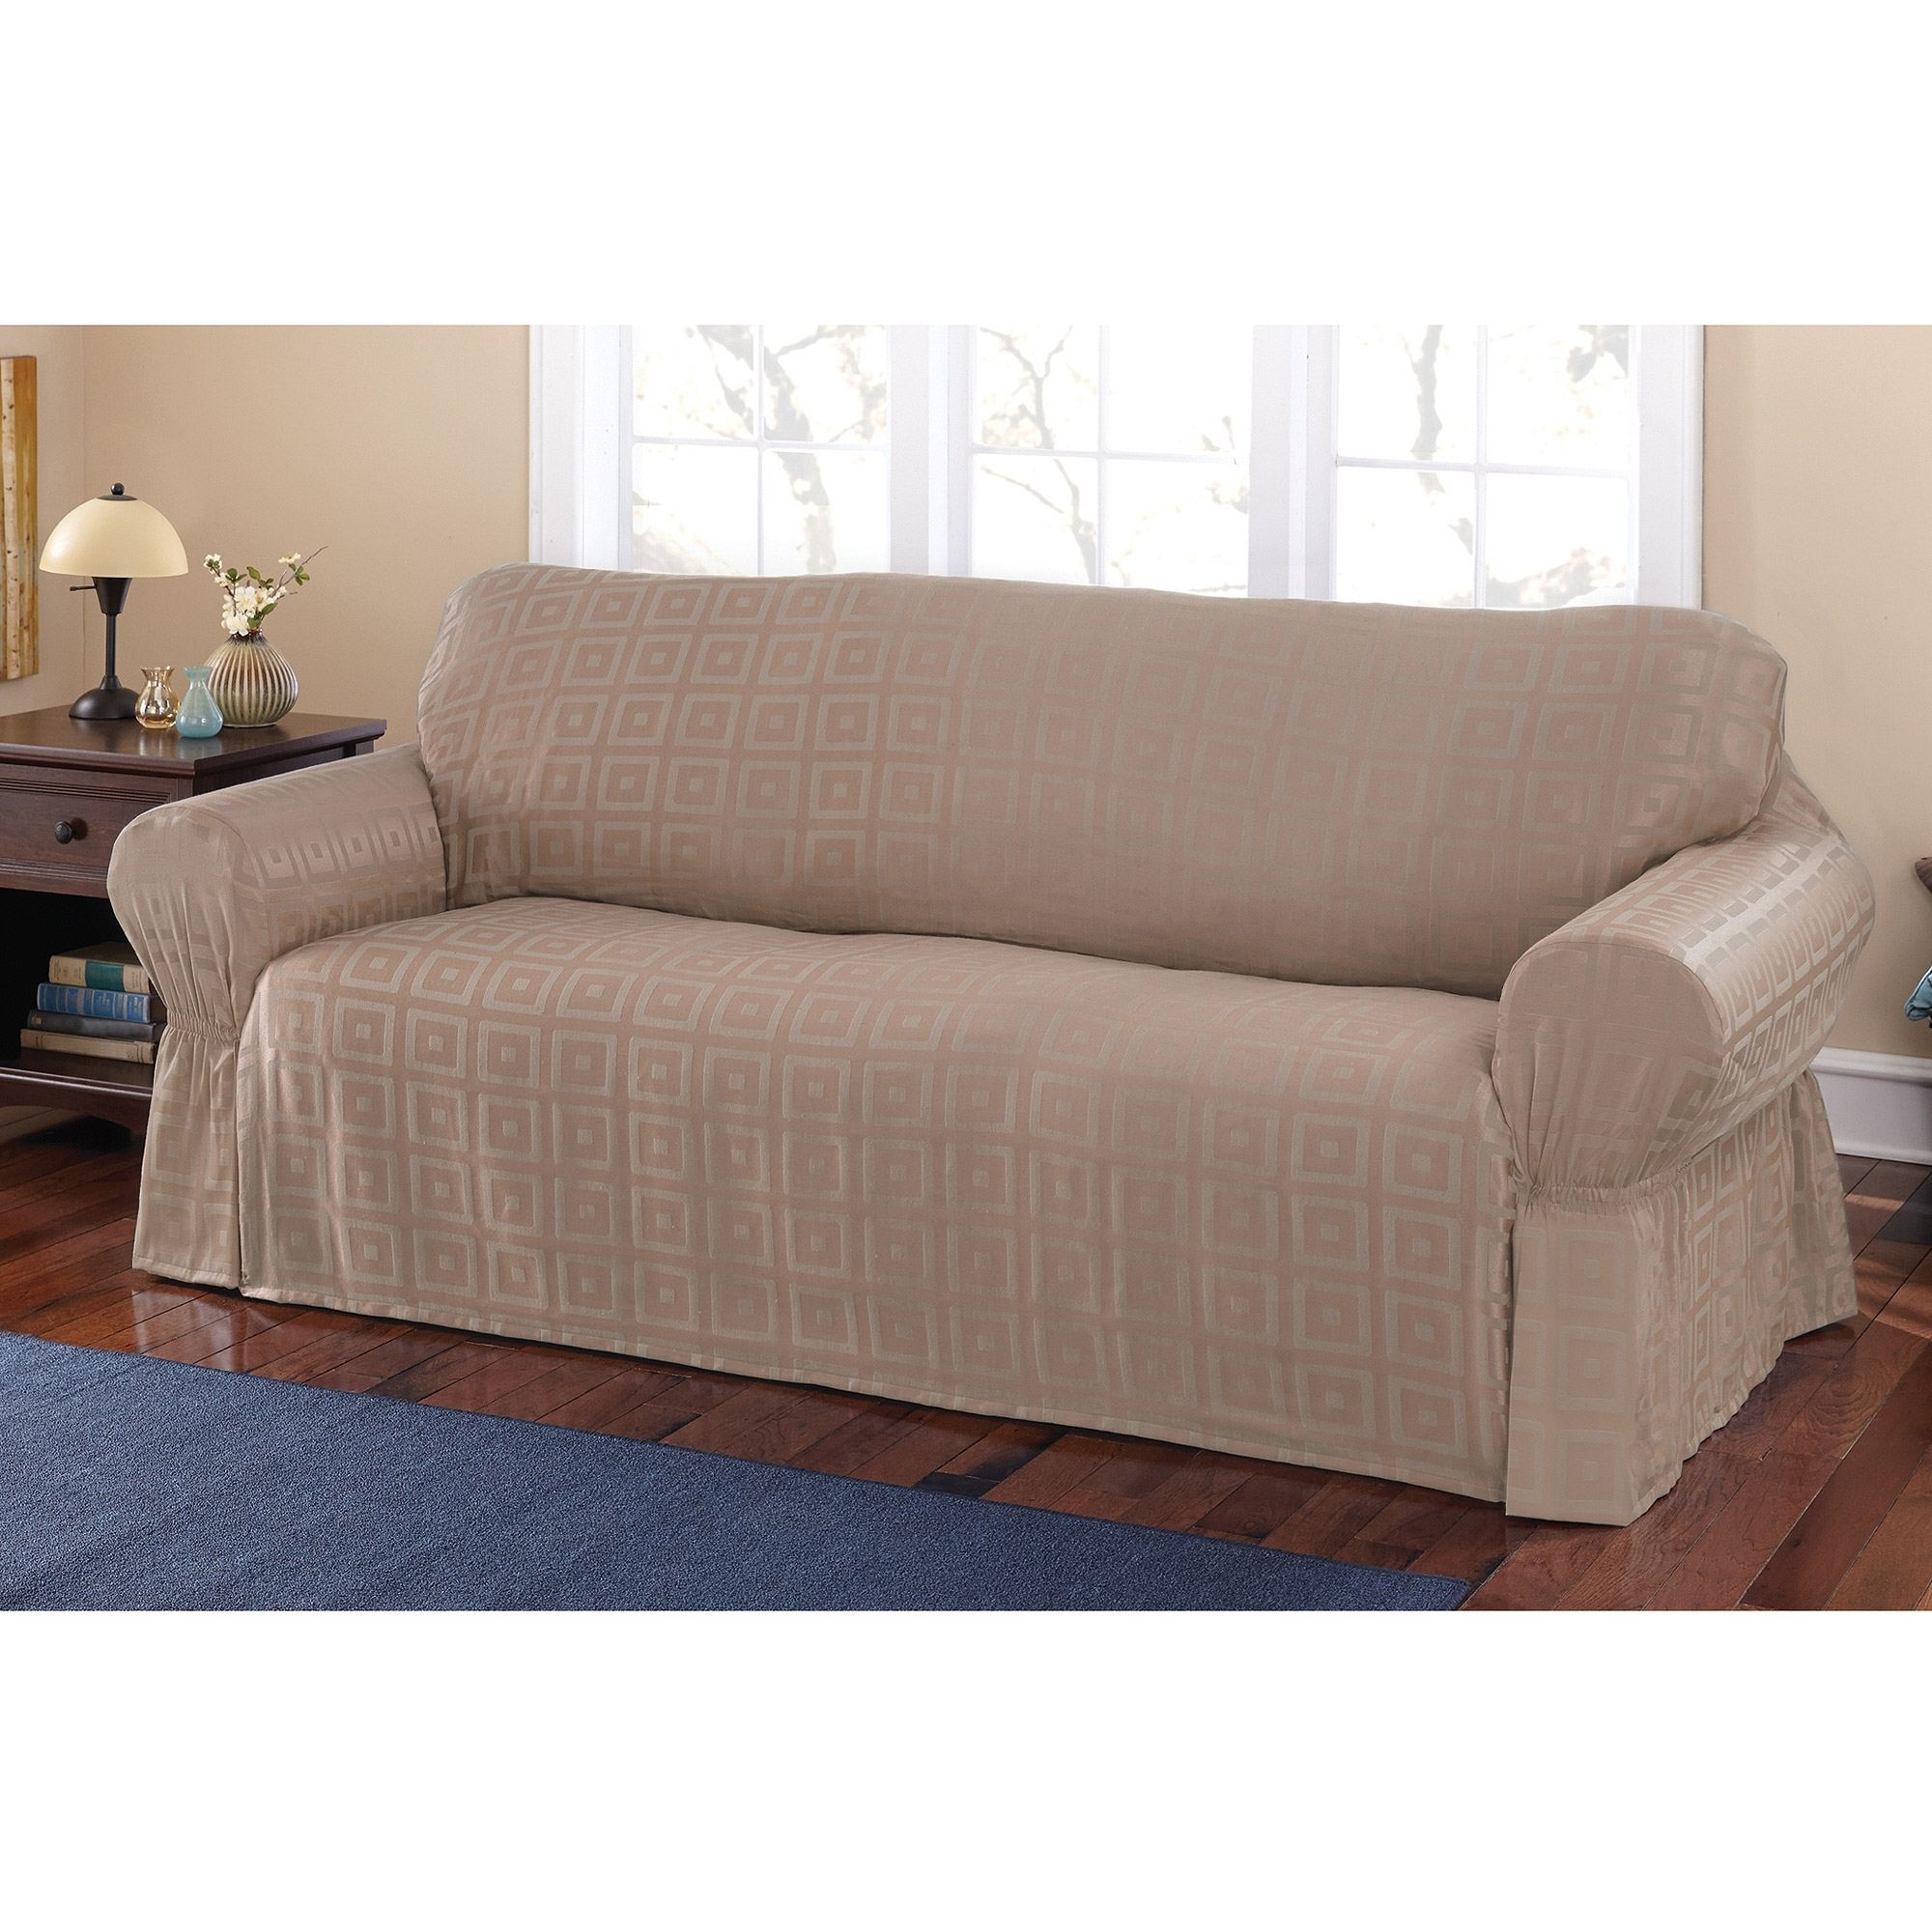 Popular Slipcovers Sofas For Mainstays Sherwood Slipcover Sofa – Walmart (View 2 of 20)